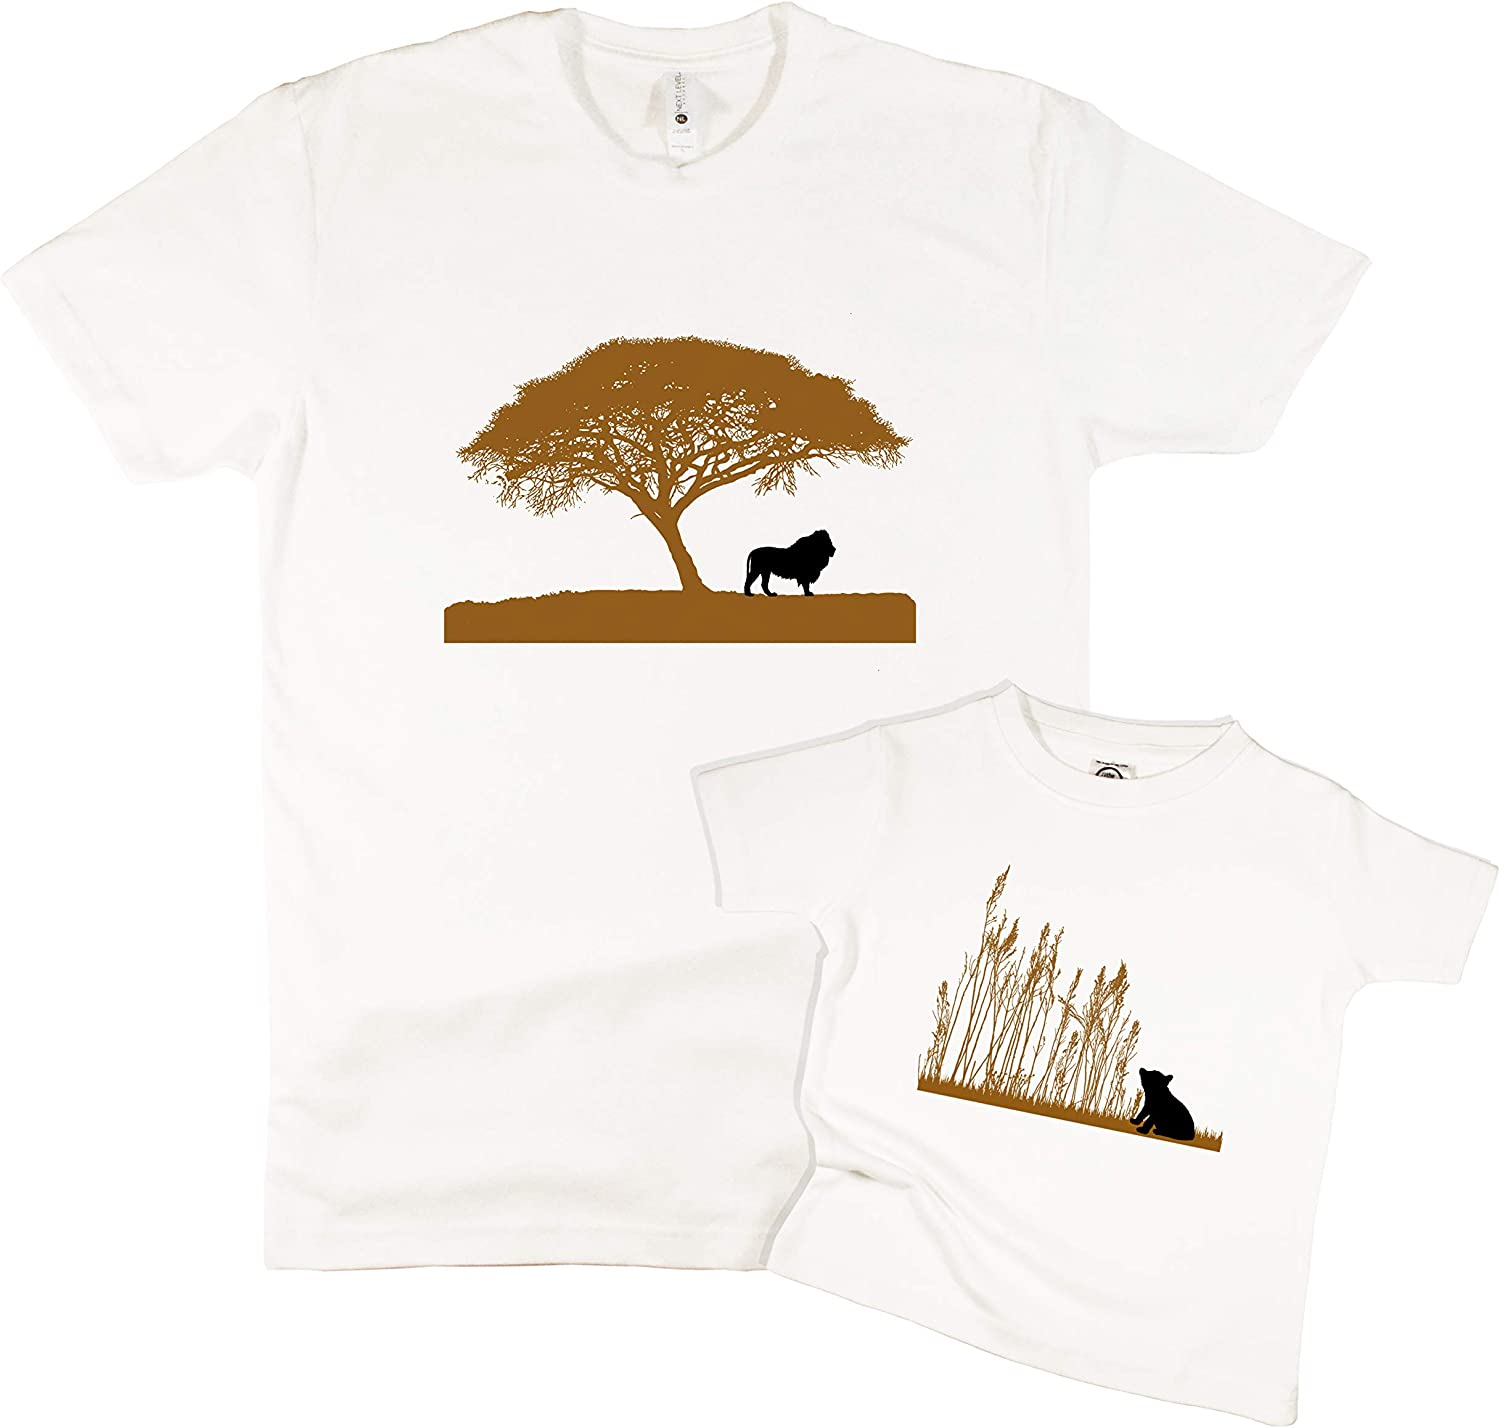 Each Sold Separately The Spunky Stork Lion /& Cub Matching Daddy /& Me Adult Baby Toddler T Shirt